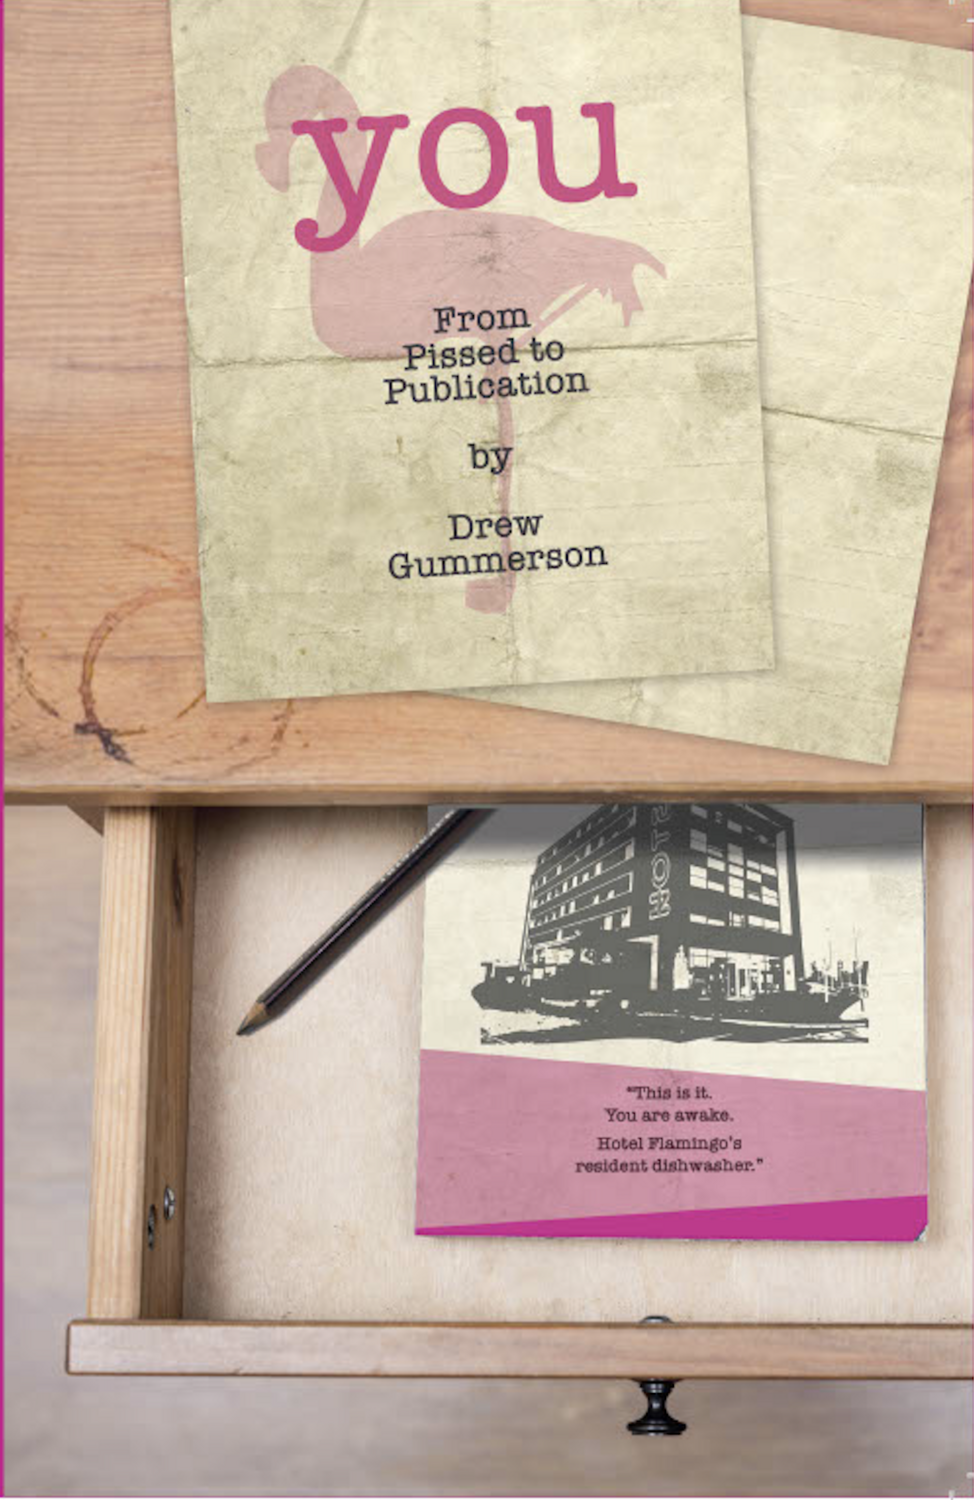 YOU (From Pissed to Publication) by Drew Gummerson